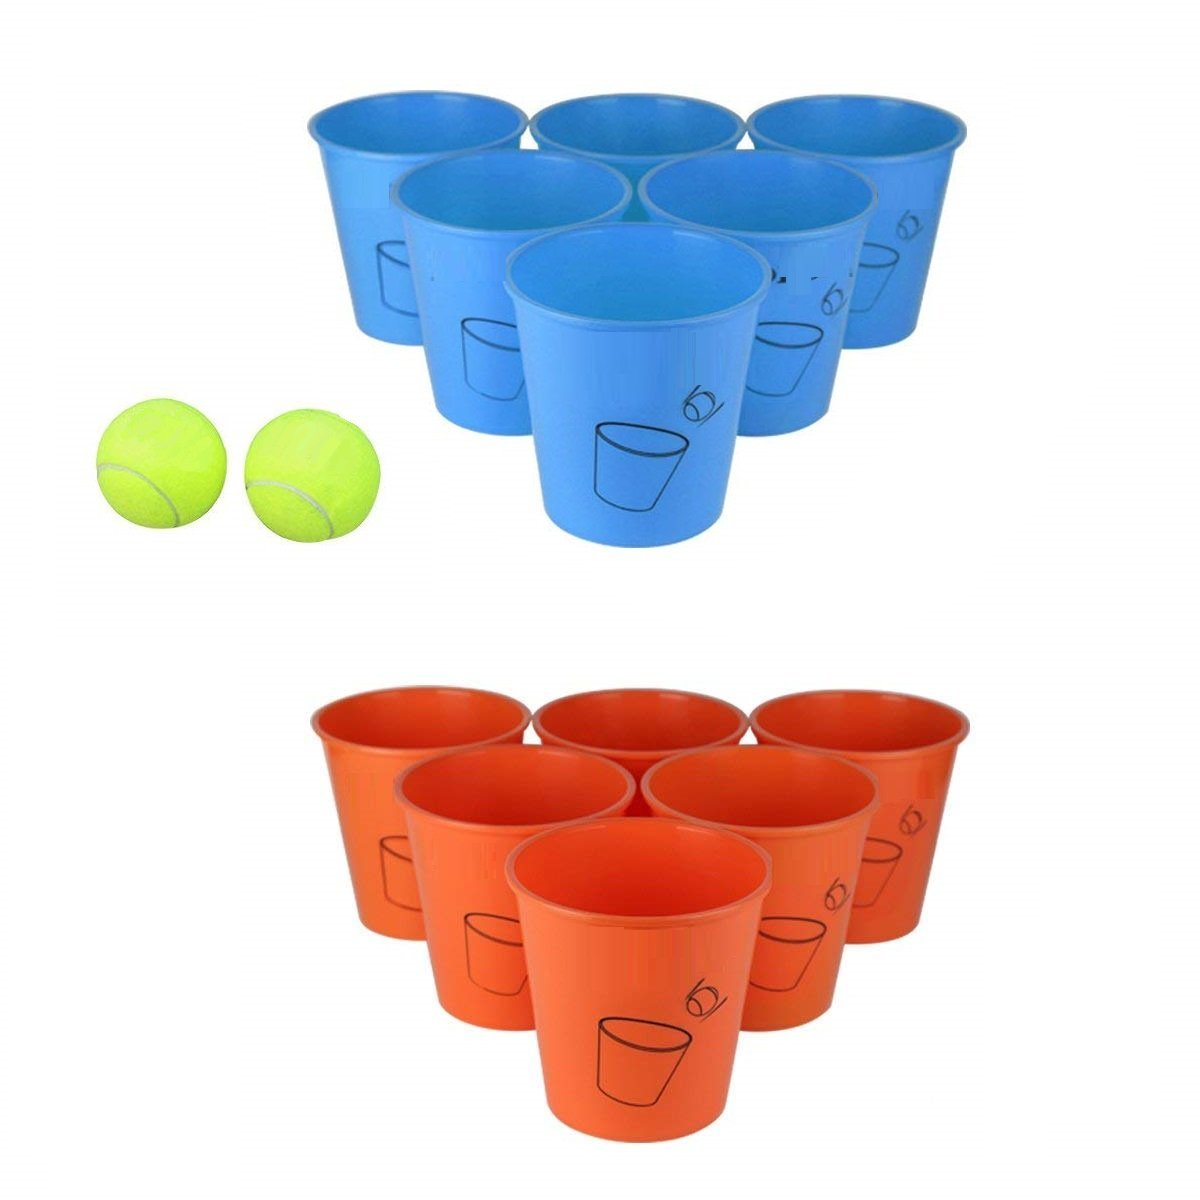 M.E.R.A. Beach Edition, Family Friendly Beach Game, Giant Beer Pong Game Ultimate Beach, Yard, Lawn, Backyard, Poolside, Camping, Tailgate, Outdoor Game - Perfect Outdoor Indoor Gift for Boys, Girls,